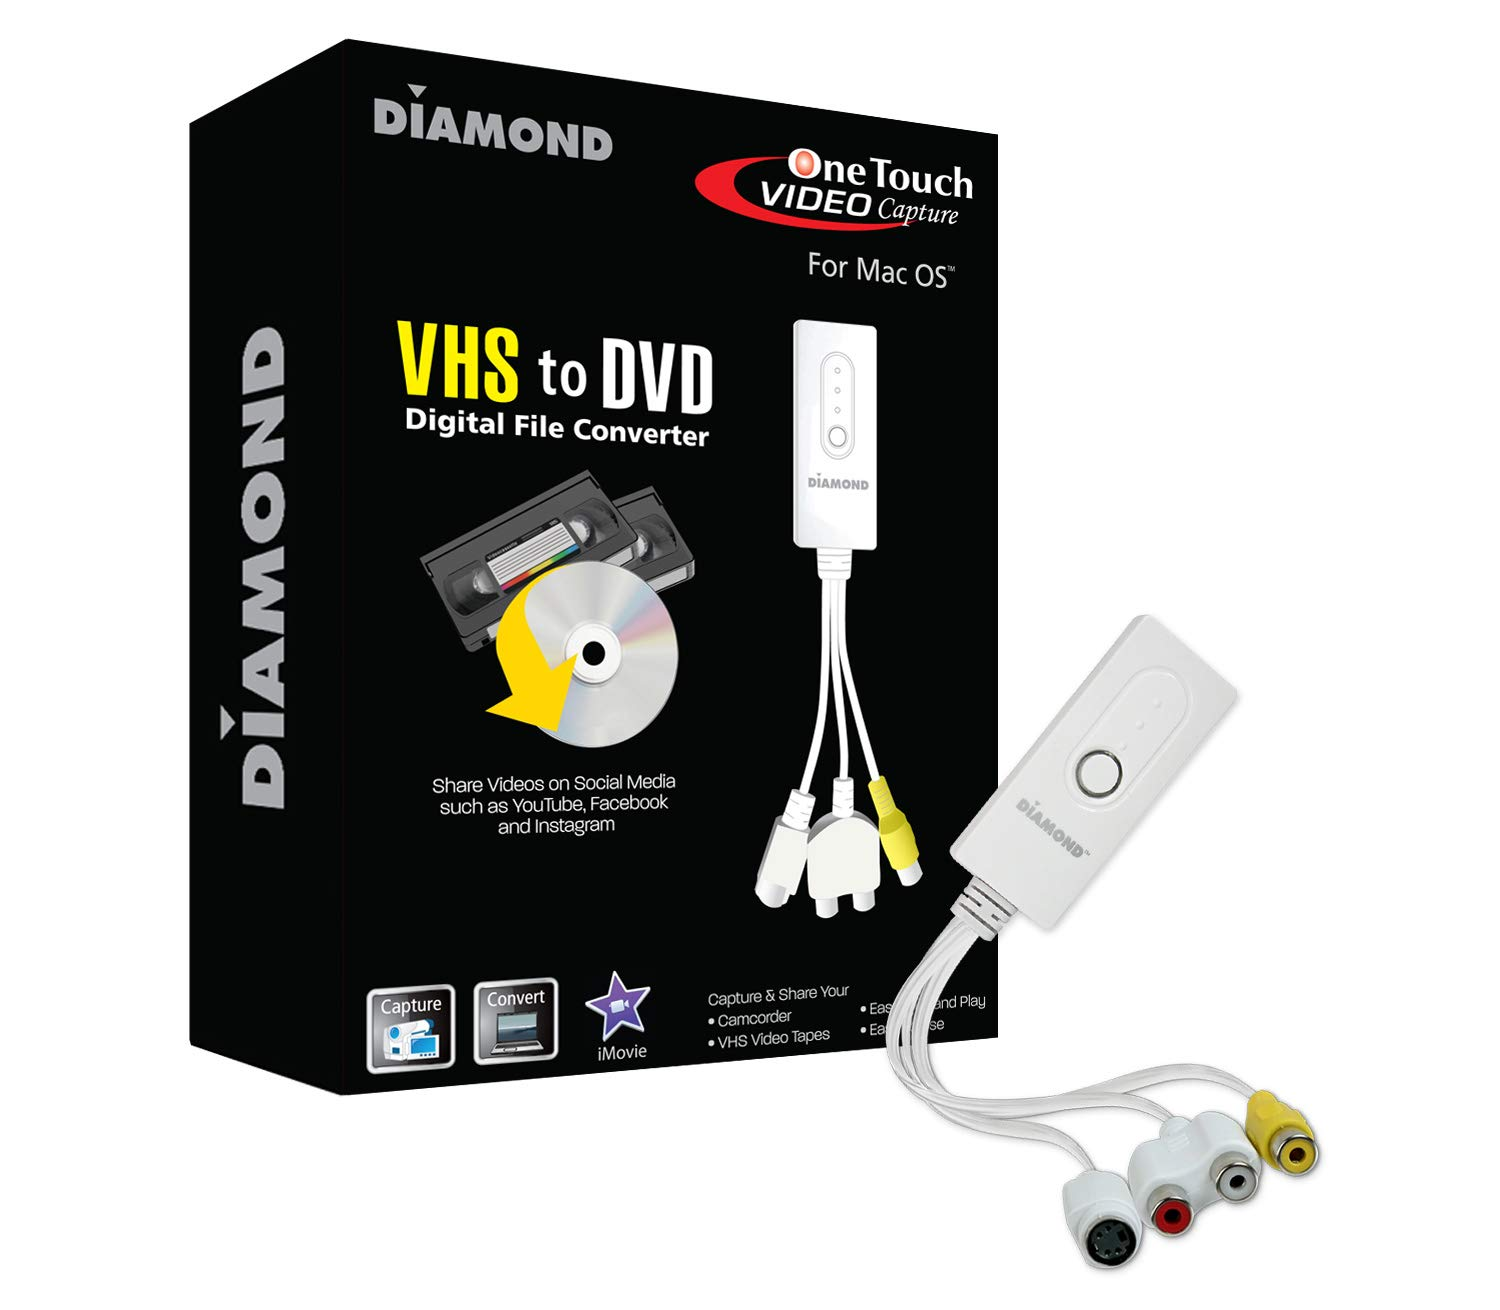 Diamond Multimedia VC500MAC USB 2.0 One Touch VHS to DVD Video Capture Device with Easy to Use Software, Convert, Edit and Save to Digital Files for MacOS by Diamond Multimedia